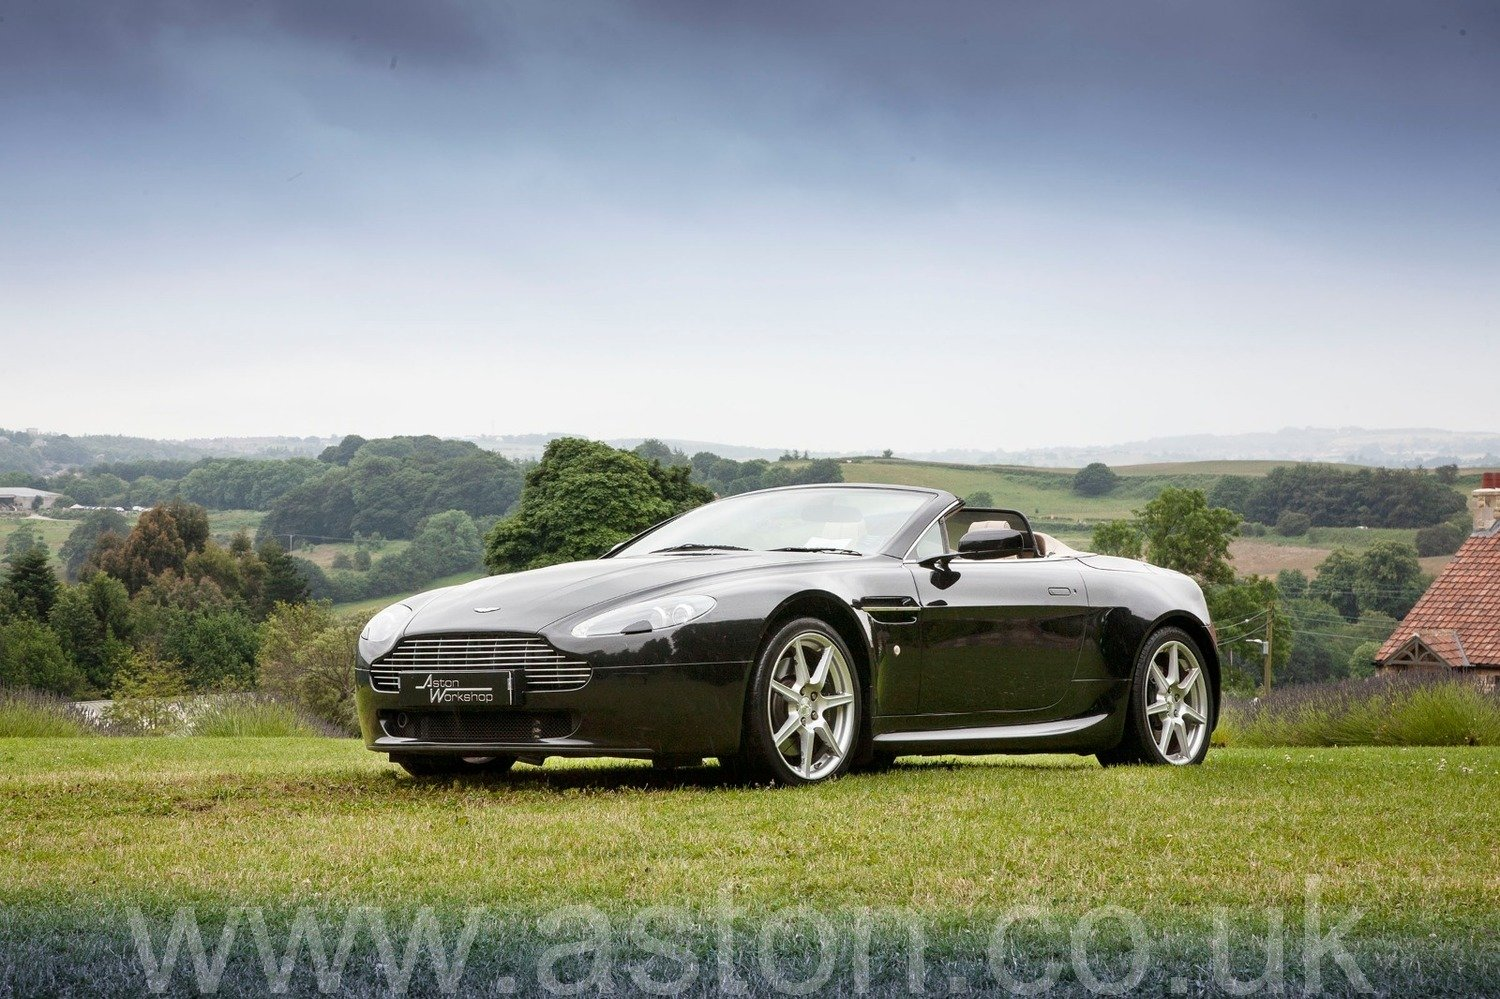 2007 Aston Martin V8 Vantage 4.3 Roadster Manual -New Clutch SOLD (picture 4 of 6)